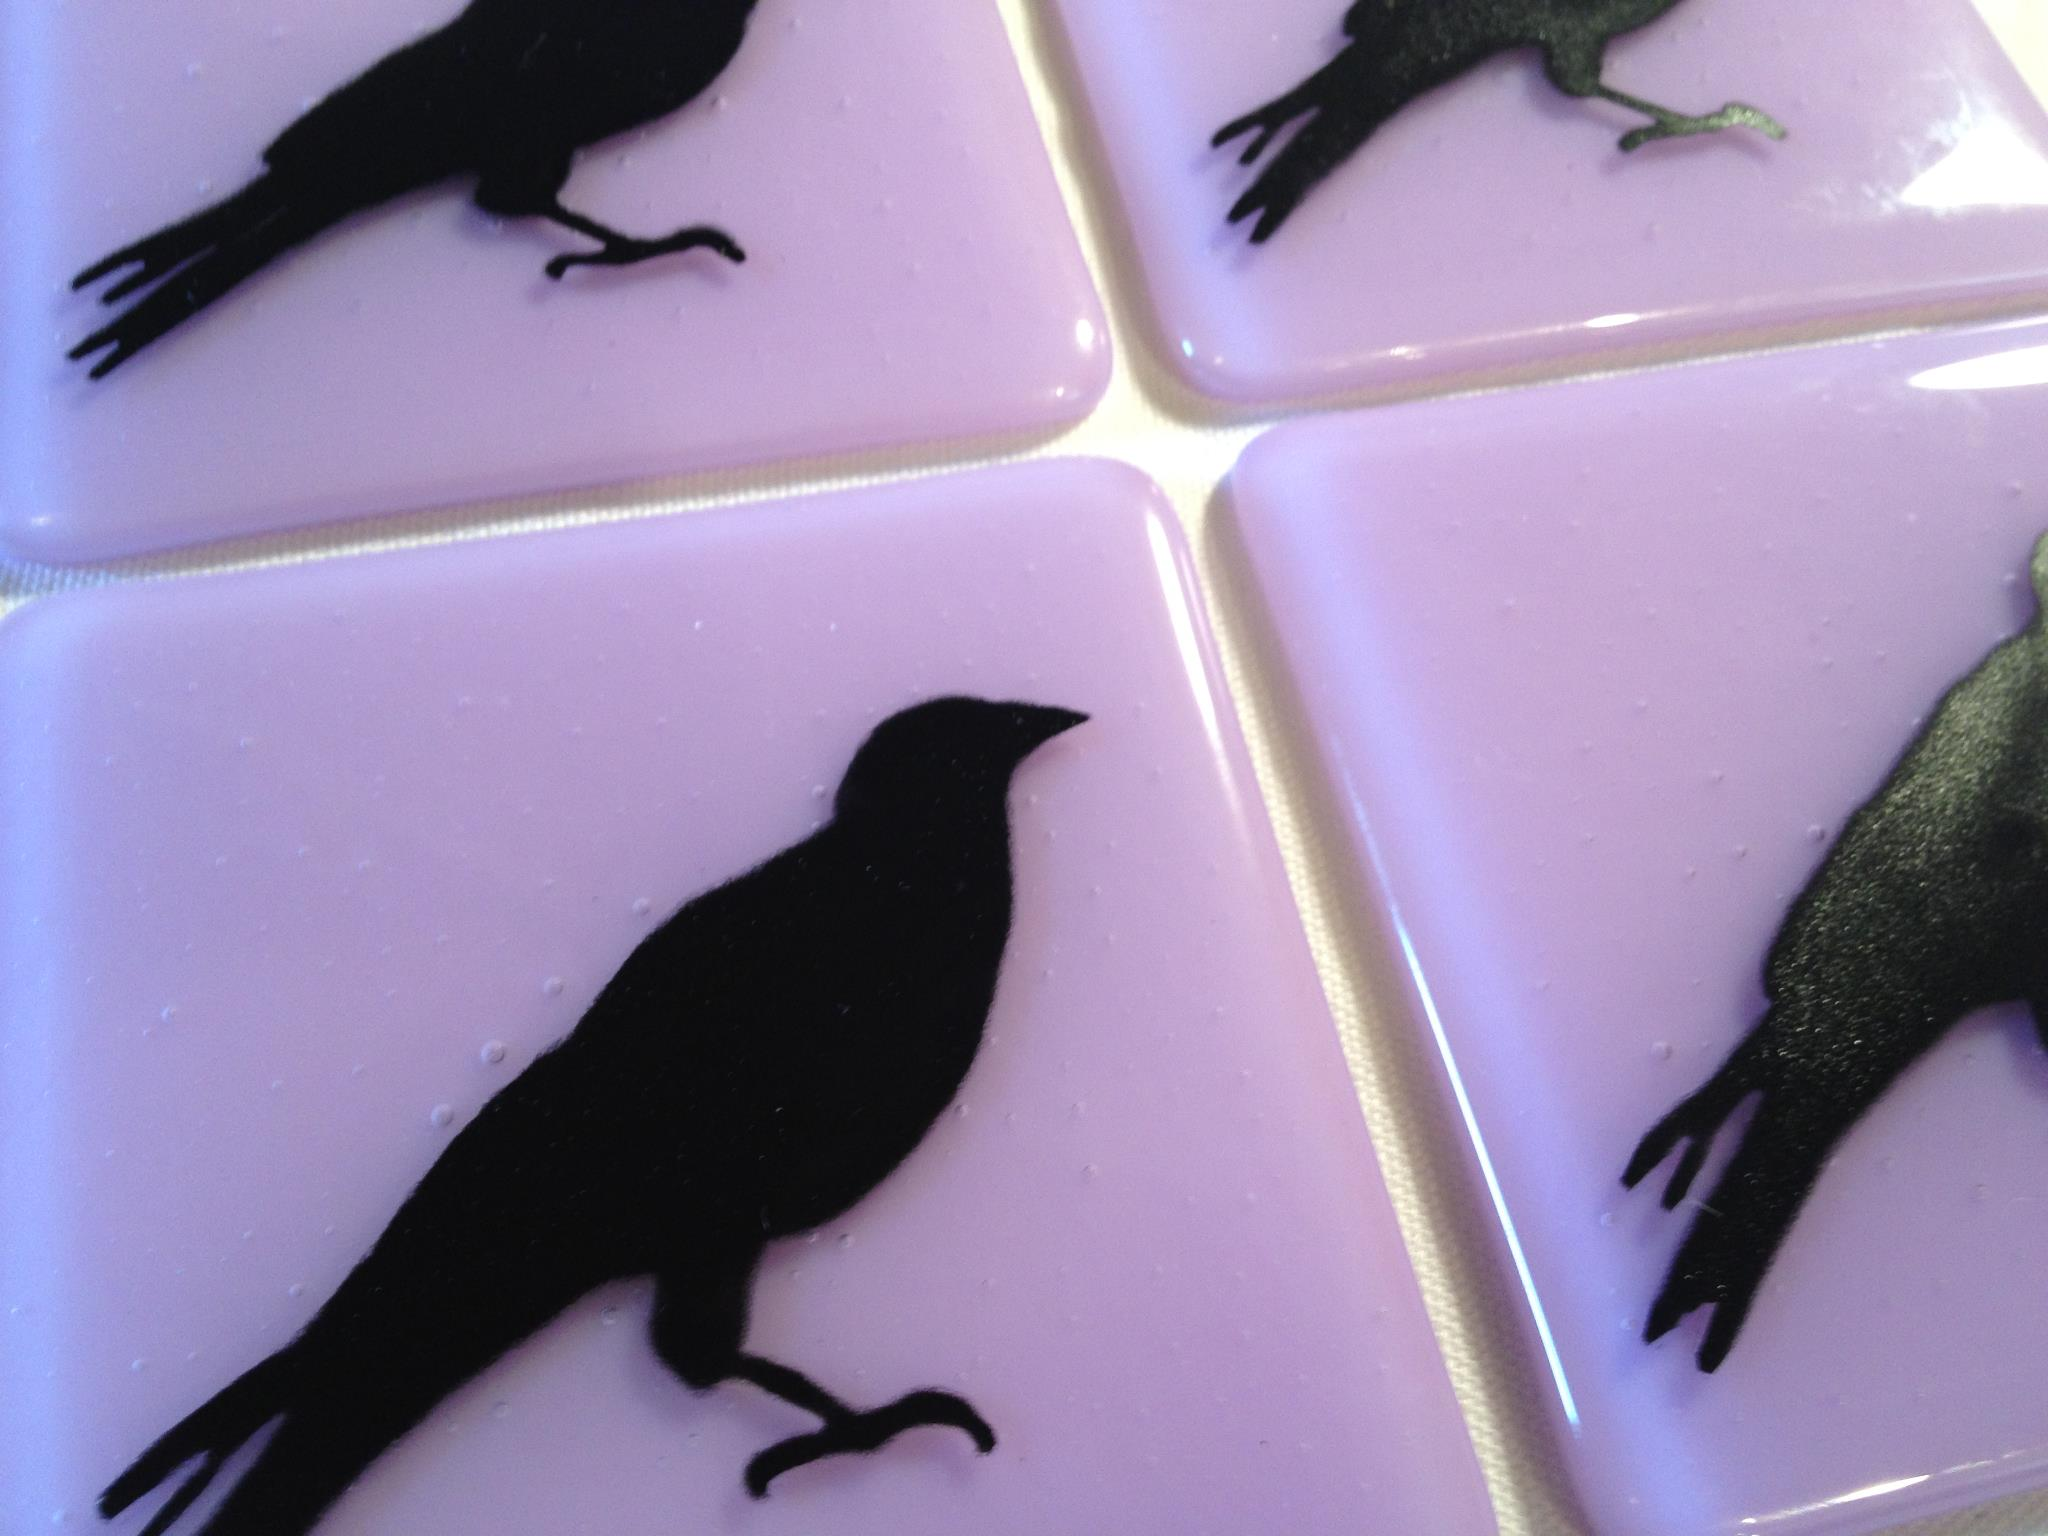 Hand-painted crows fused into lavender glass tiles.